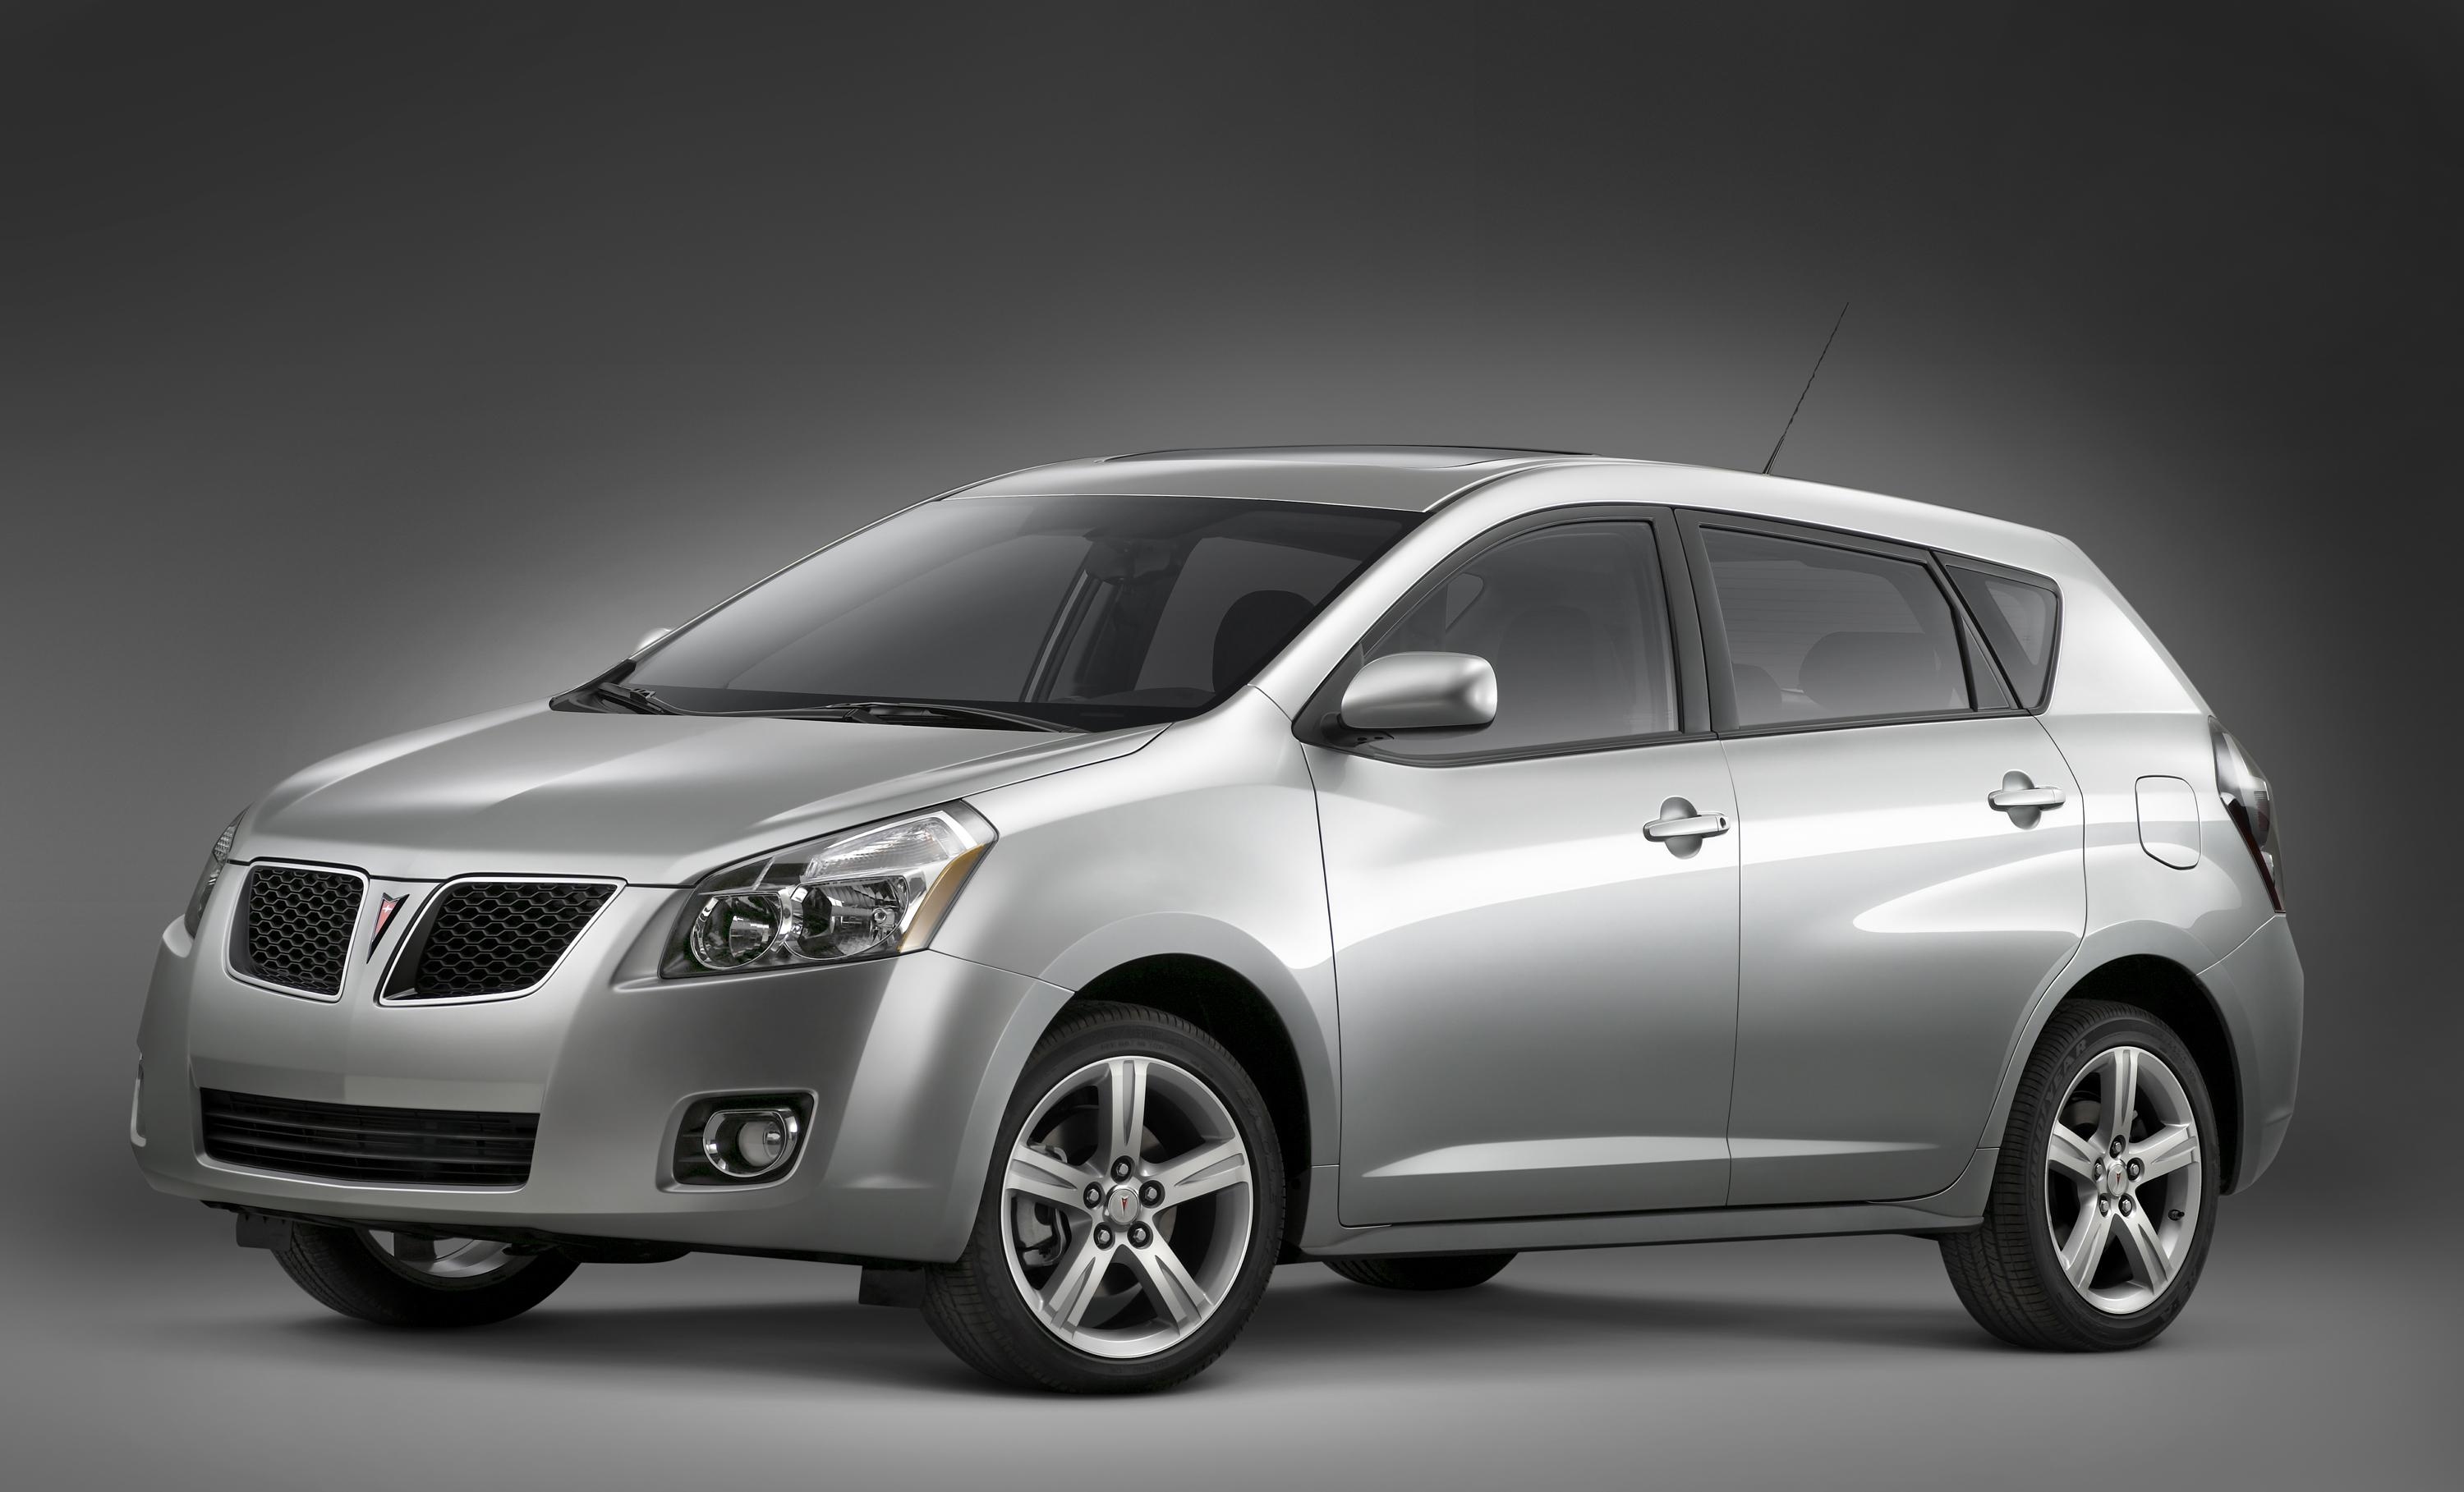 2009 pontiac vibe review top speed. Black Bedroom Furniture Sets. Home Design Ideas